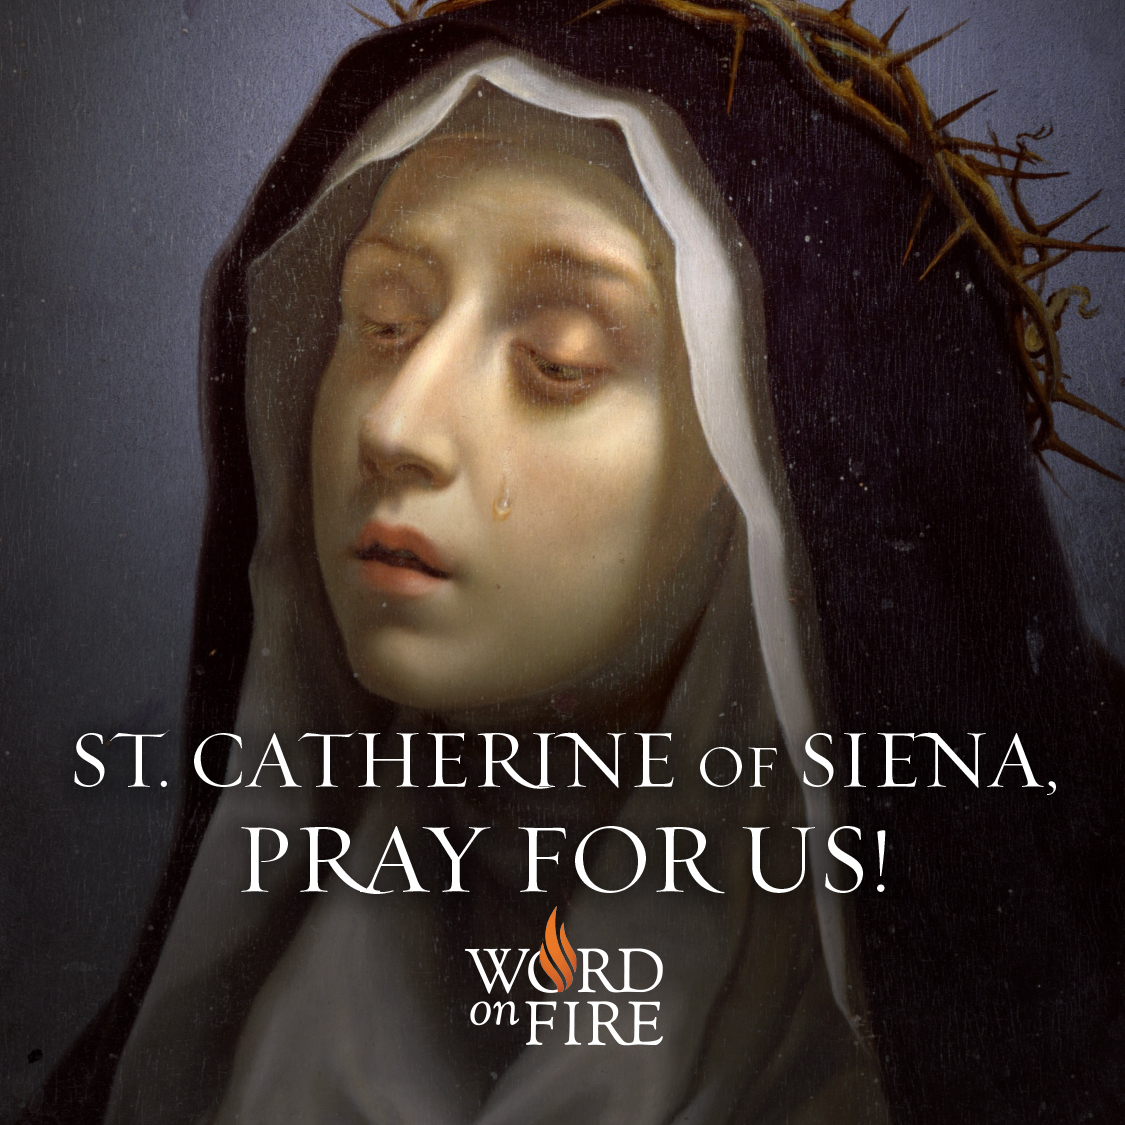 PRAYERGRAPHIC_CatherineofSiena3